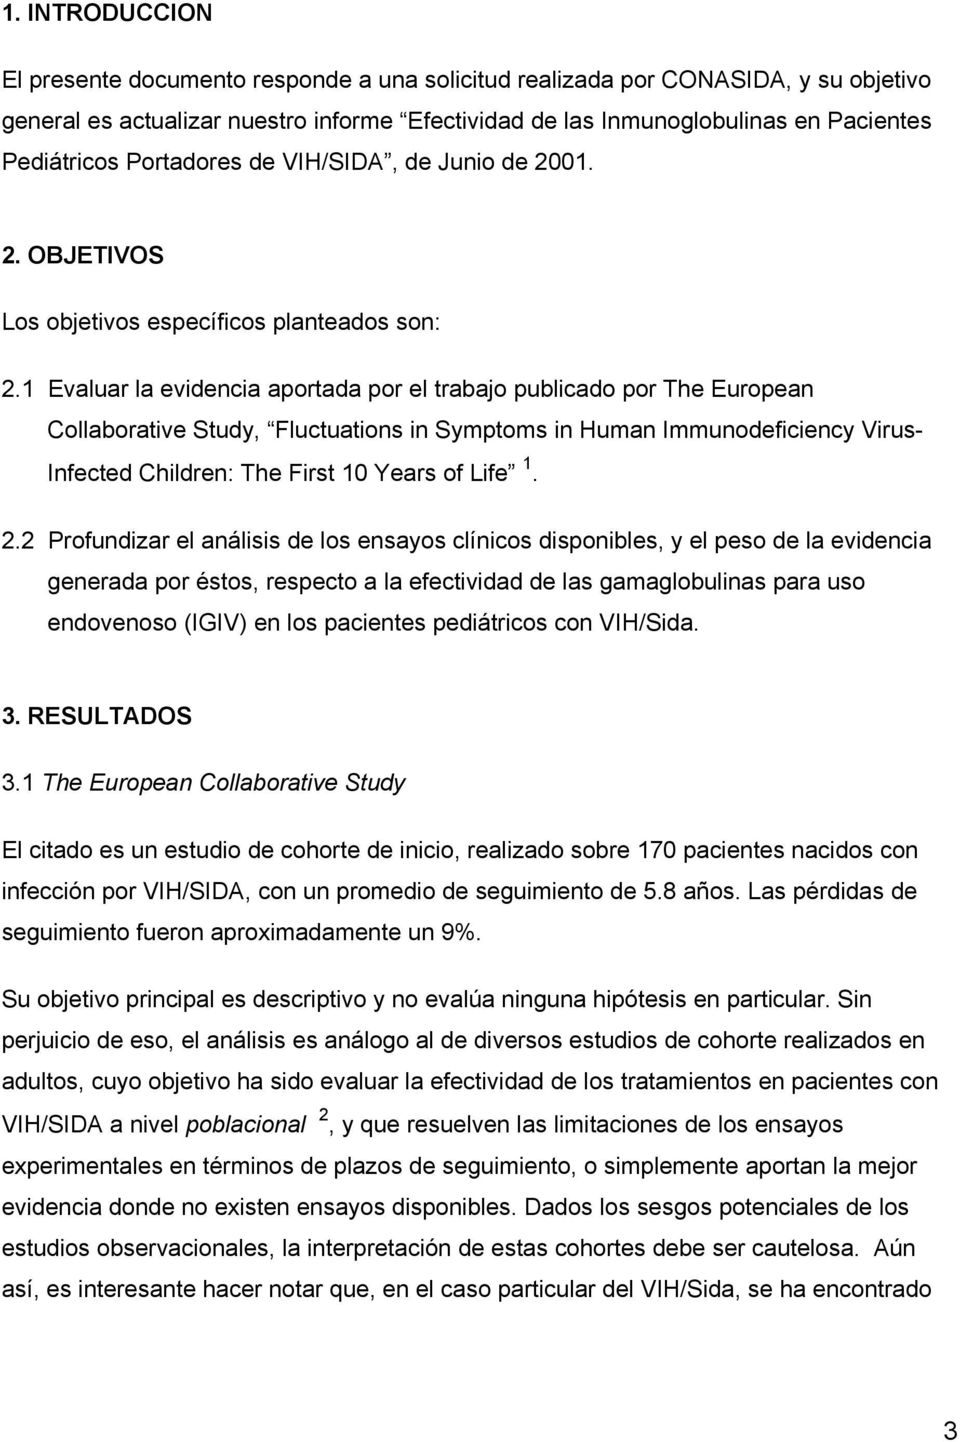 1 Evaluar la evidencia aportada por el trabajo publicado por The European Collaborative Study, Fluctuations in Symptoms in Human Immunodeficiency Virus- Infected Children: The First 10 Years of Life